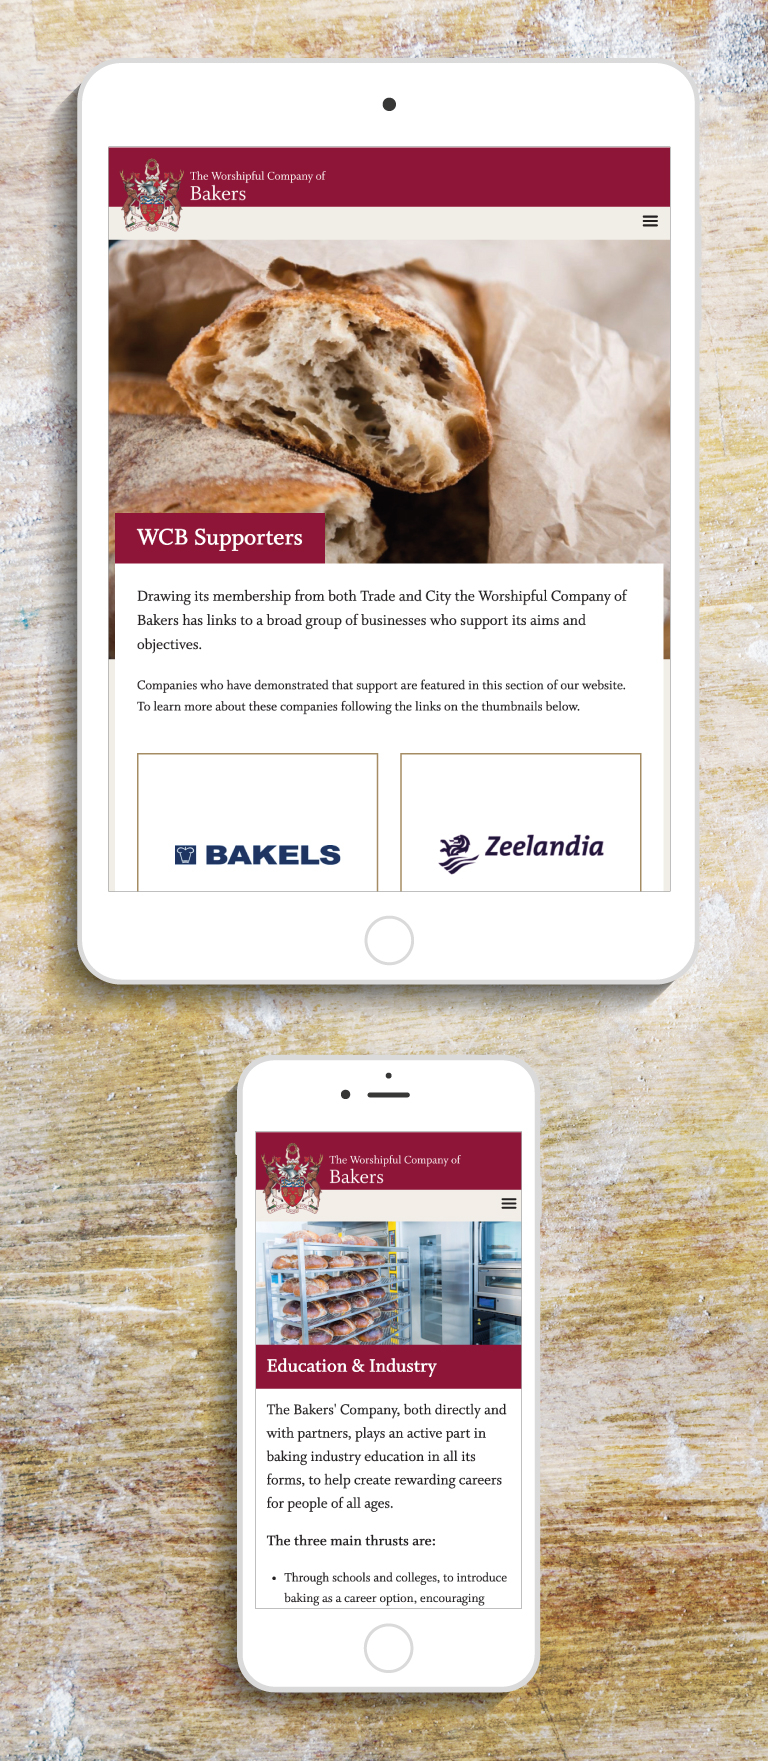 The Worshipful Company of Bakers' Supporters and Education & Industry webpages on an iPad and an iPhone - mobile